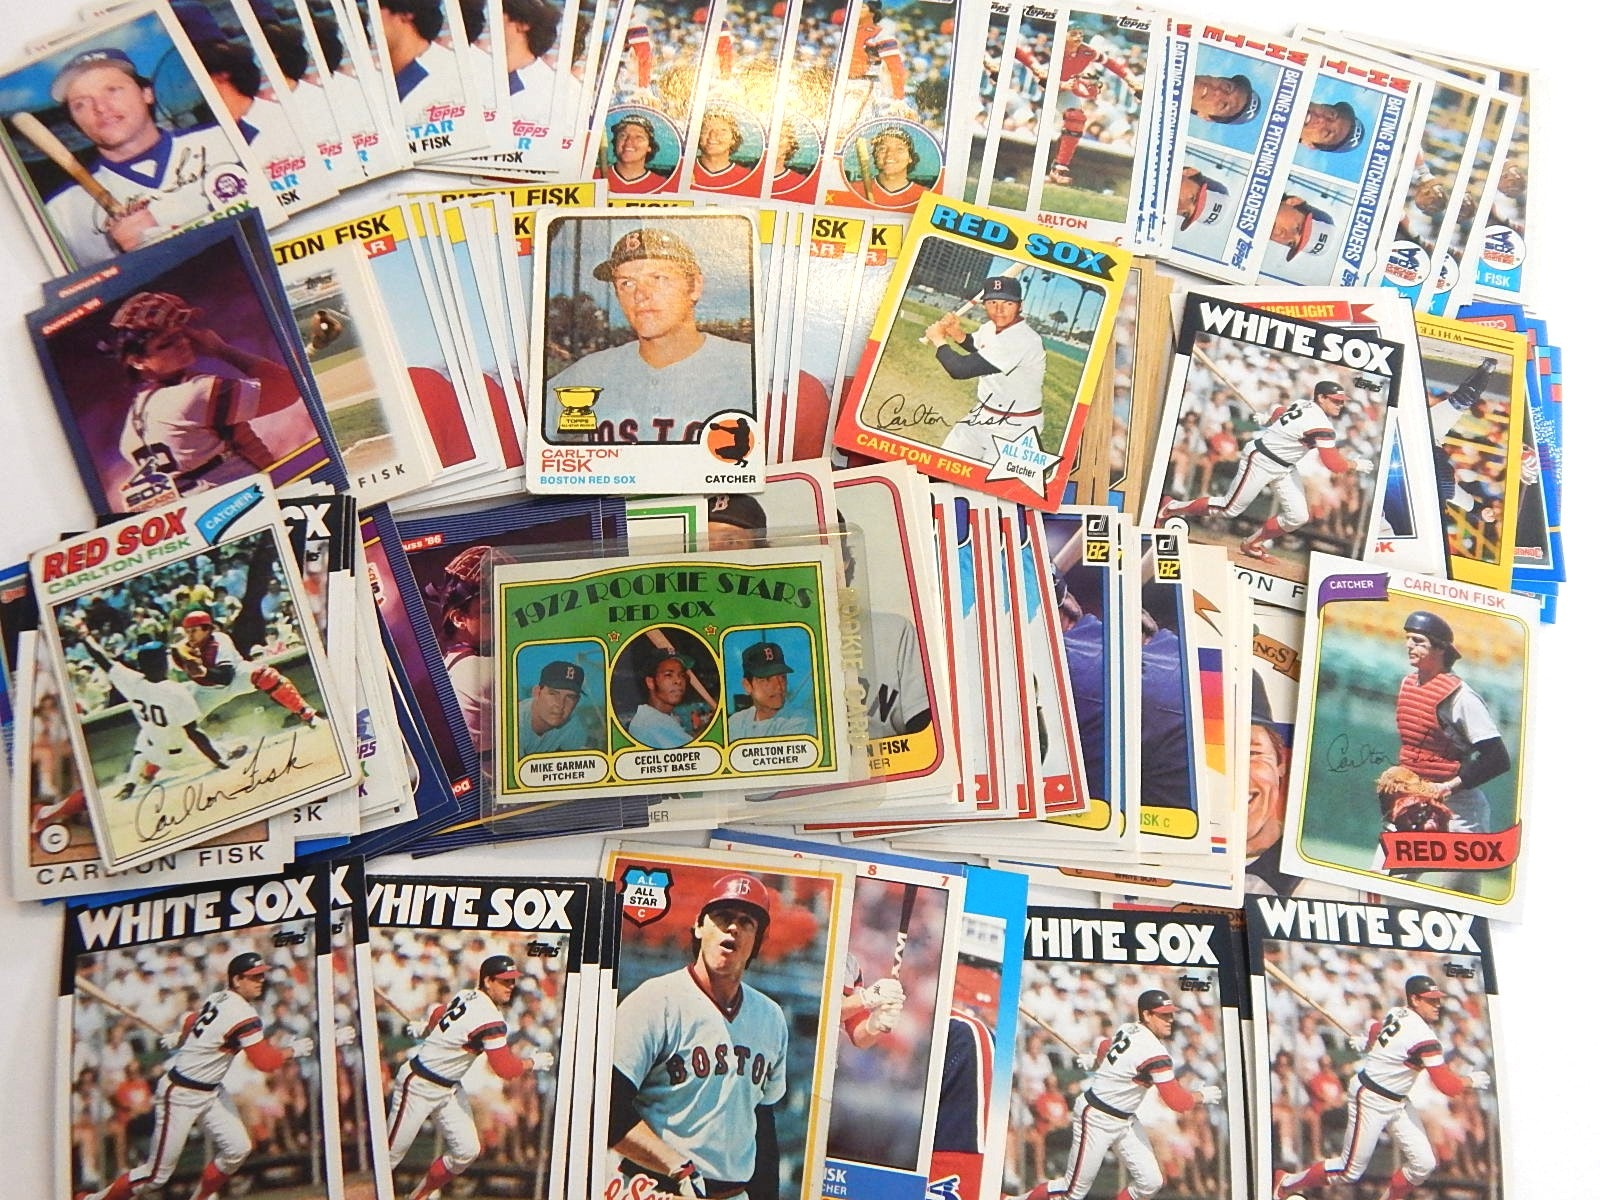 (HOF) Carlton Fisk Baseball Card Collection form 1970s and 1980s with RC